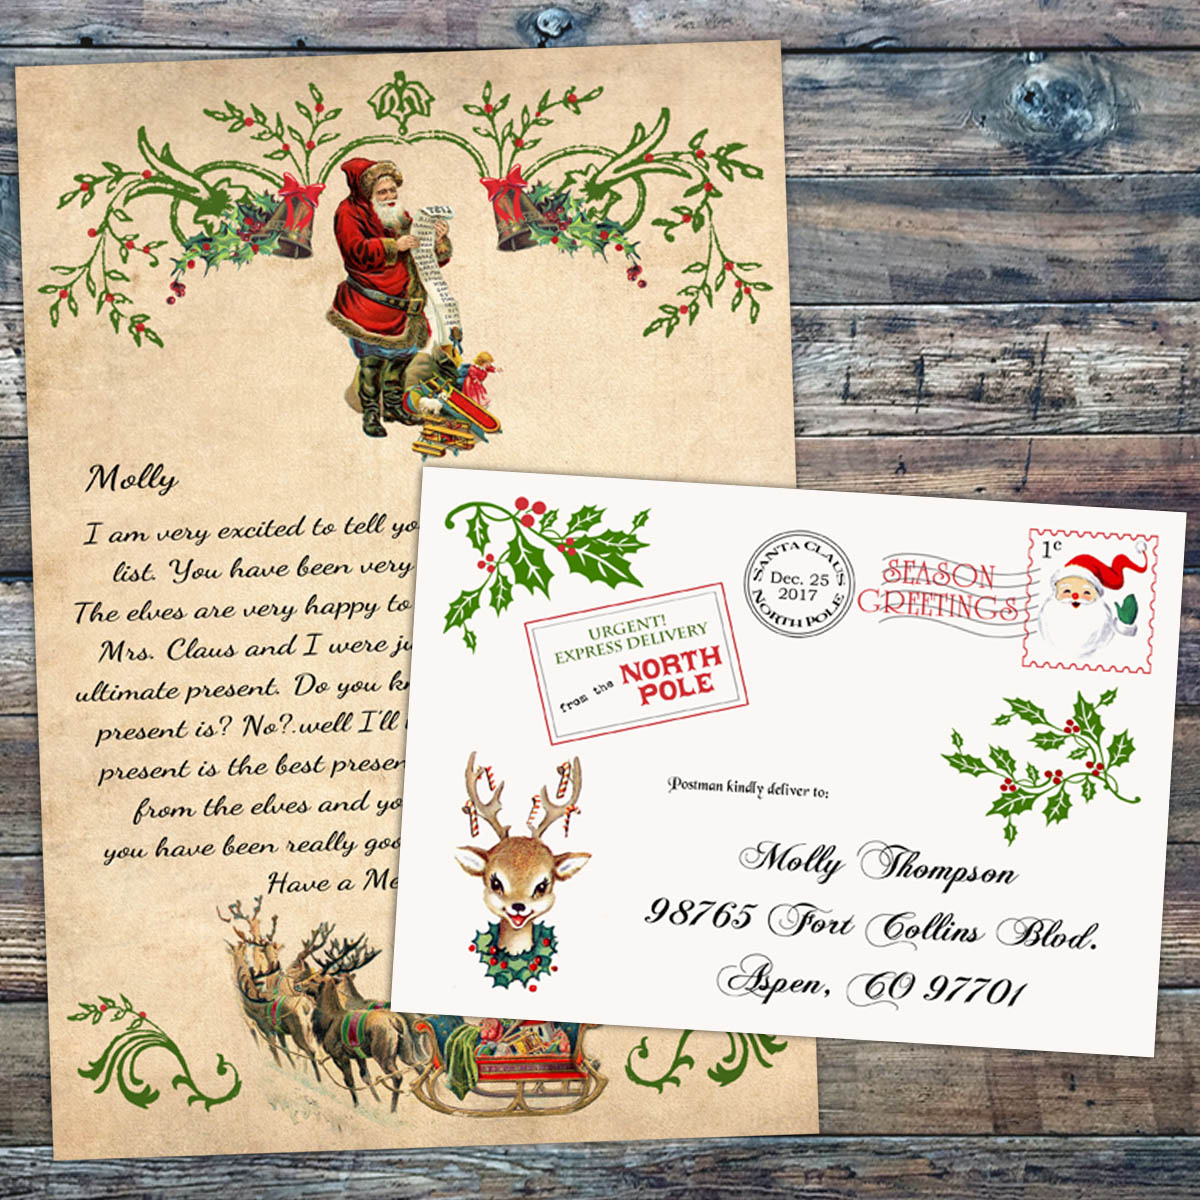 official pole mail personalized letters from santa letter from santa claus personalized official pole 875